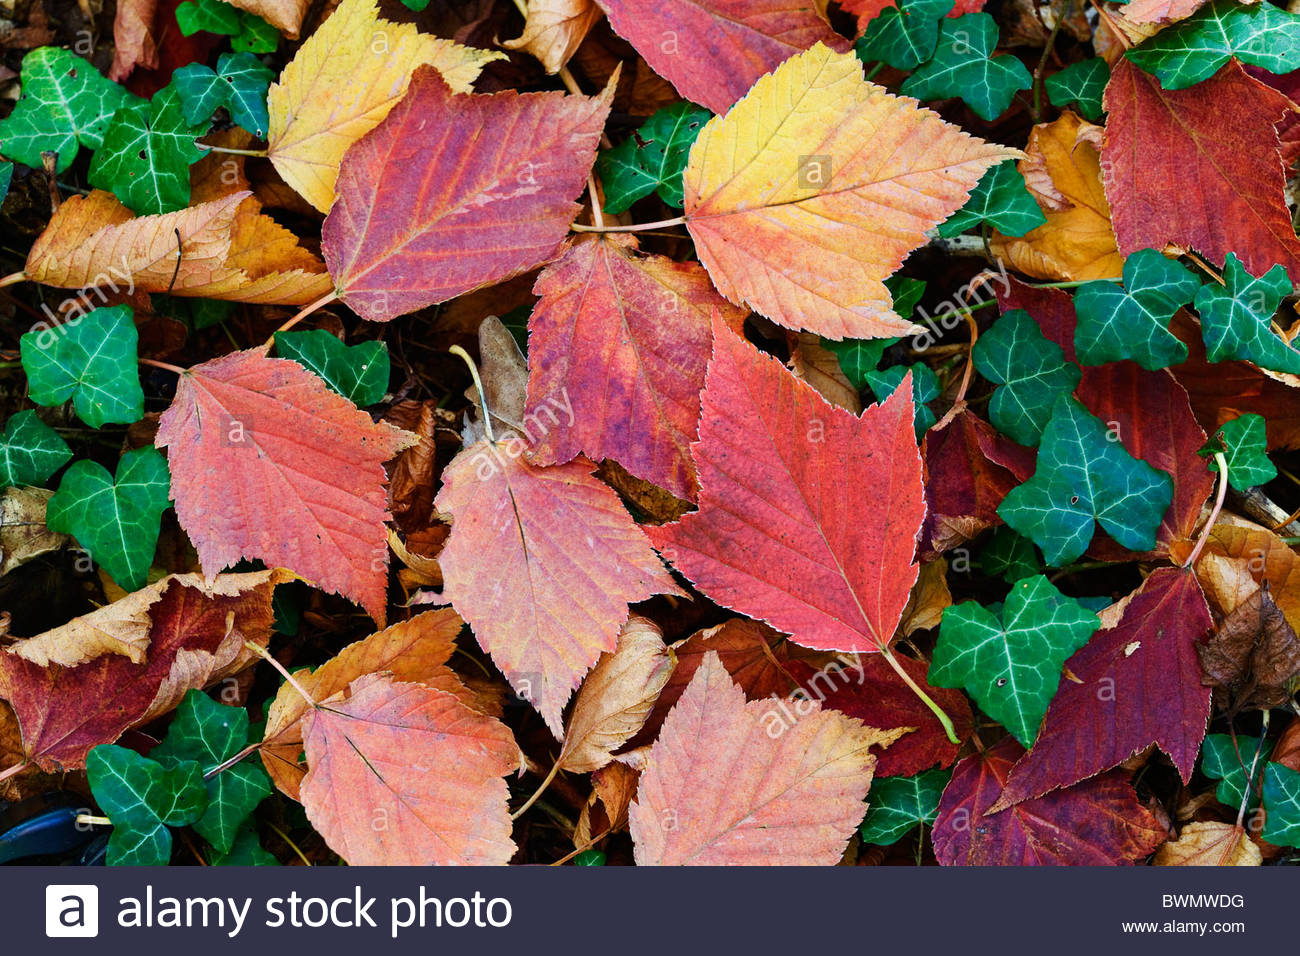 Autumn leaves, Fallen Acer rufinerve 'Hatsuyuki' leaves and Hedera - Stock Image